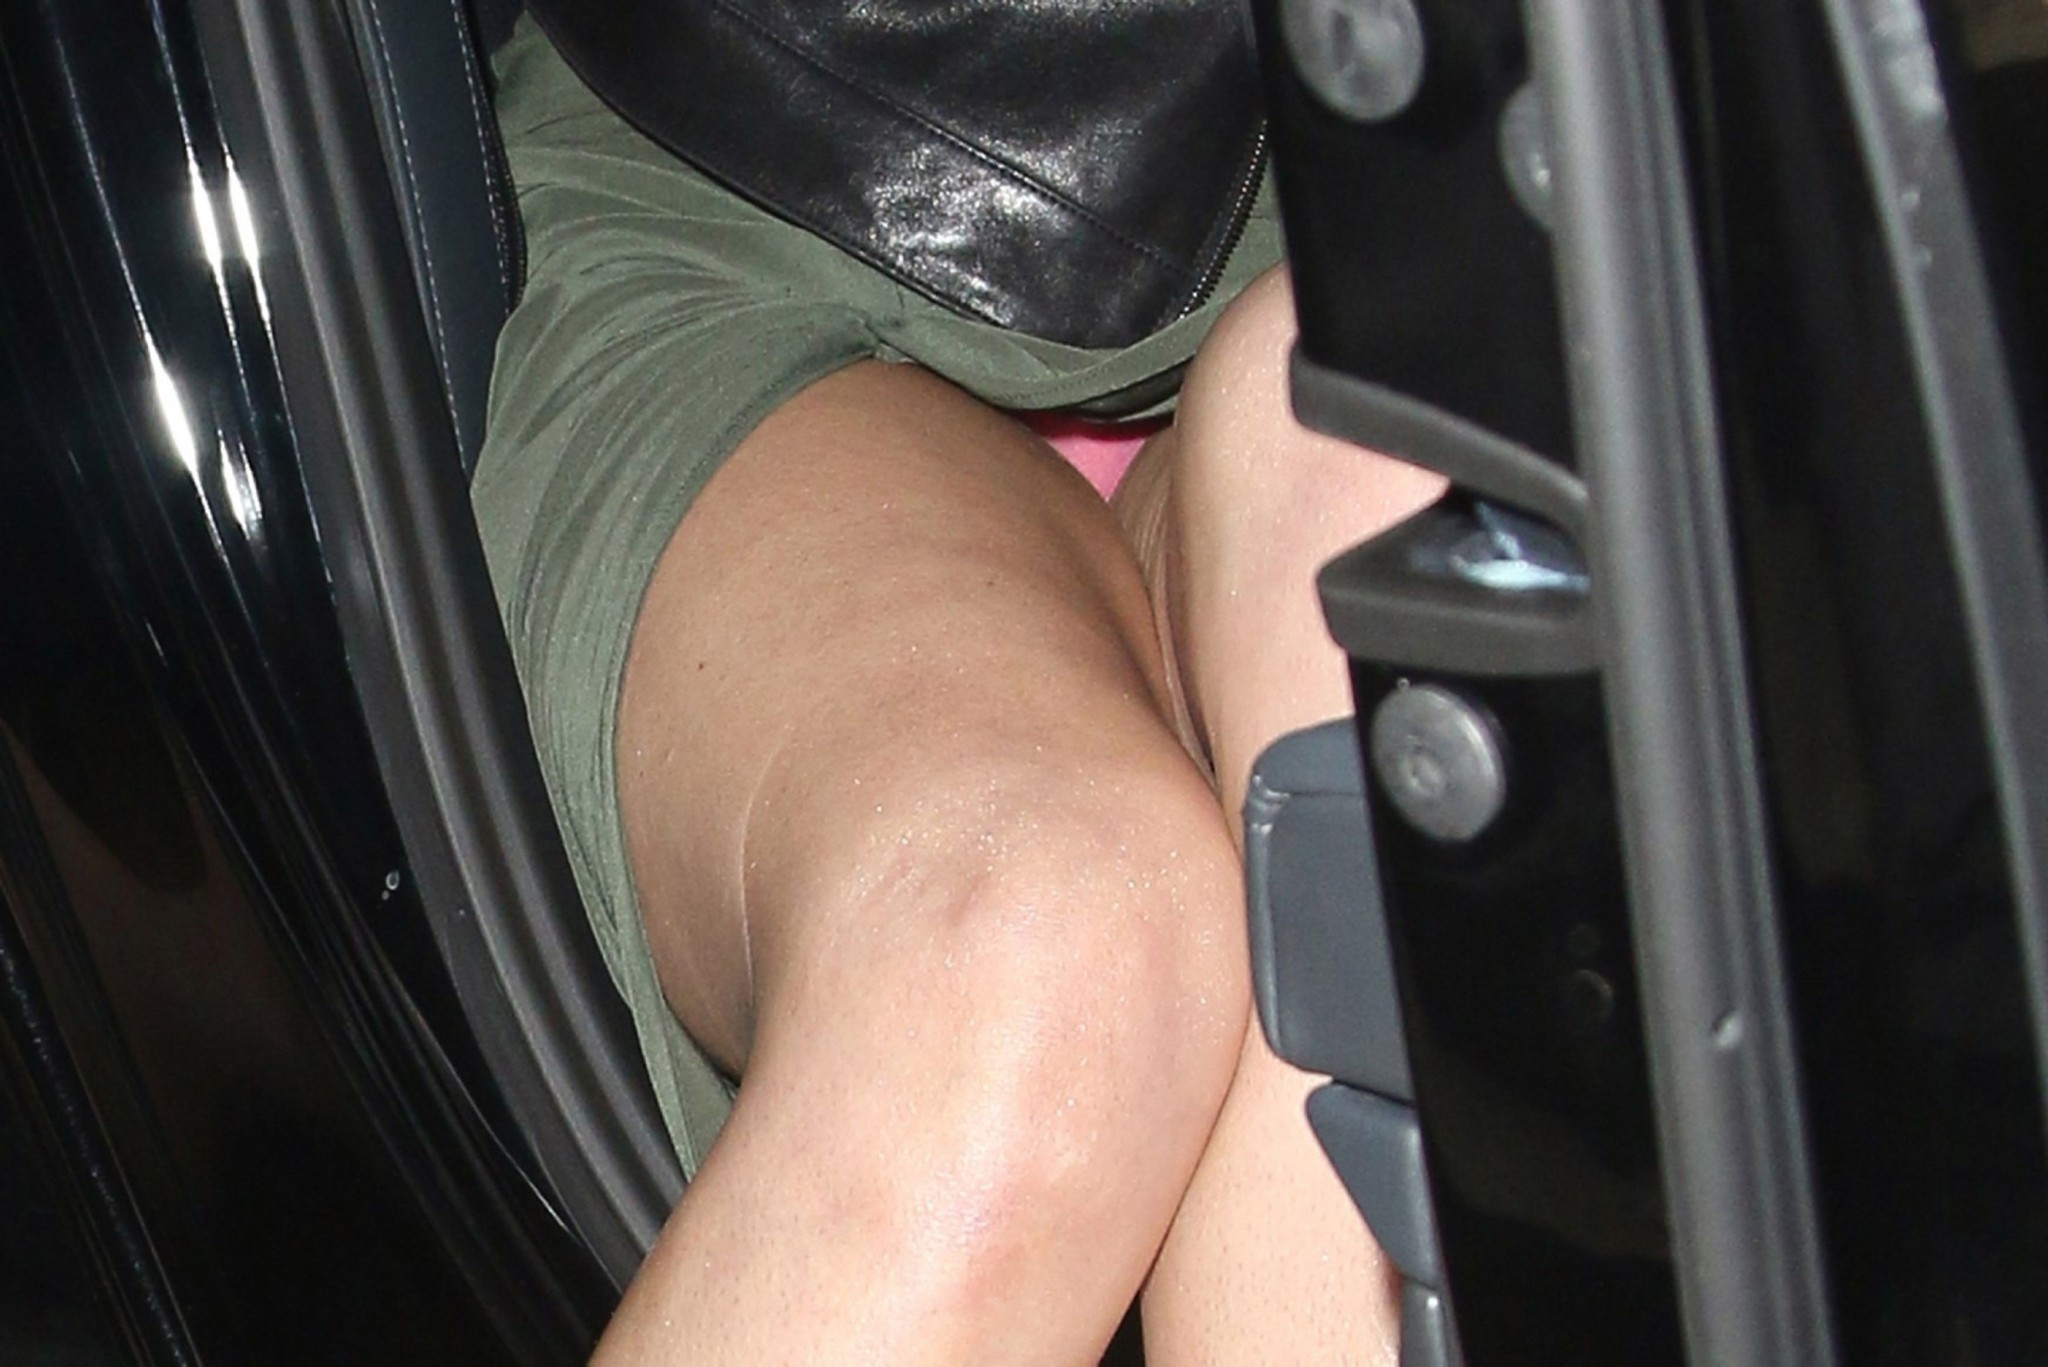 rumer-willis-pink-panties-upskirt-2